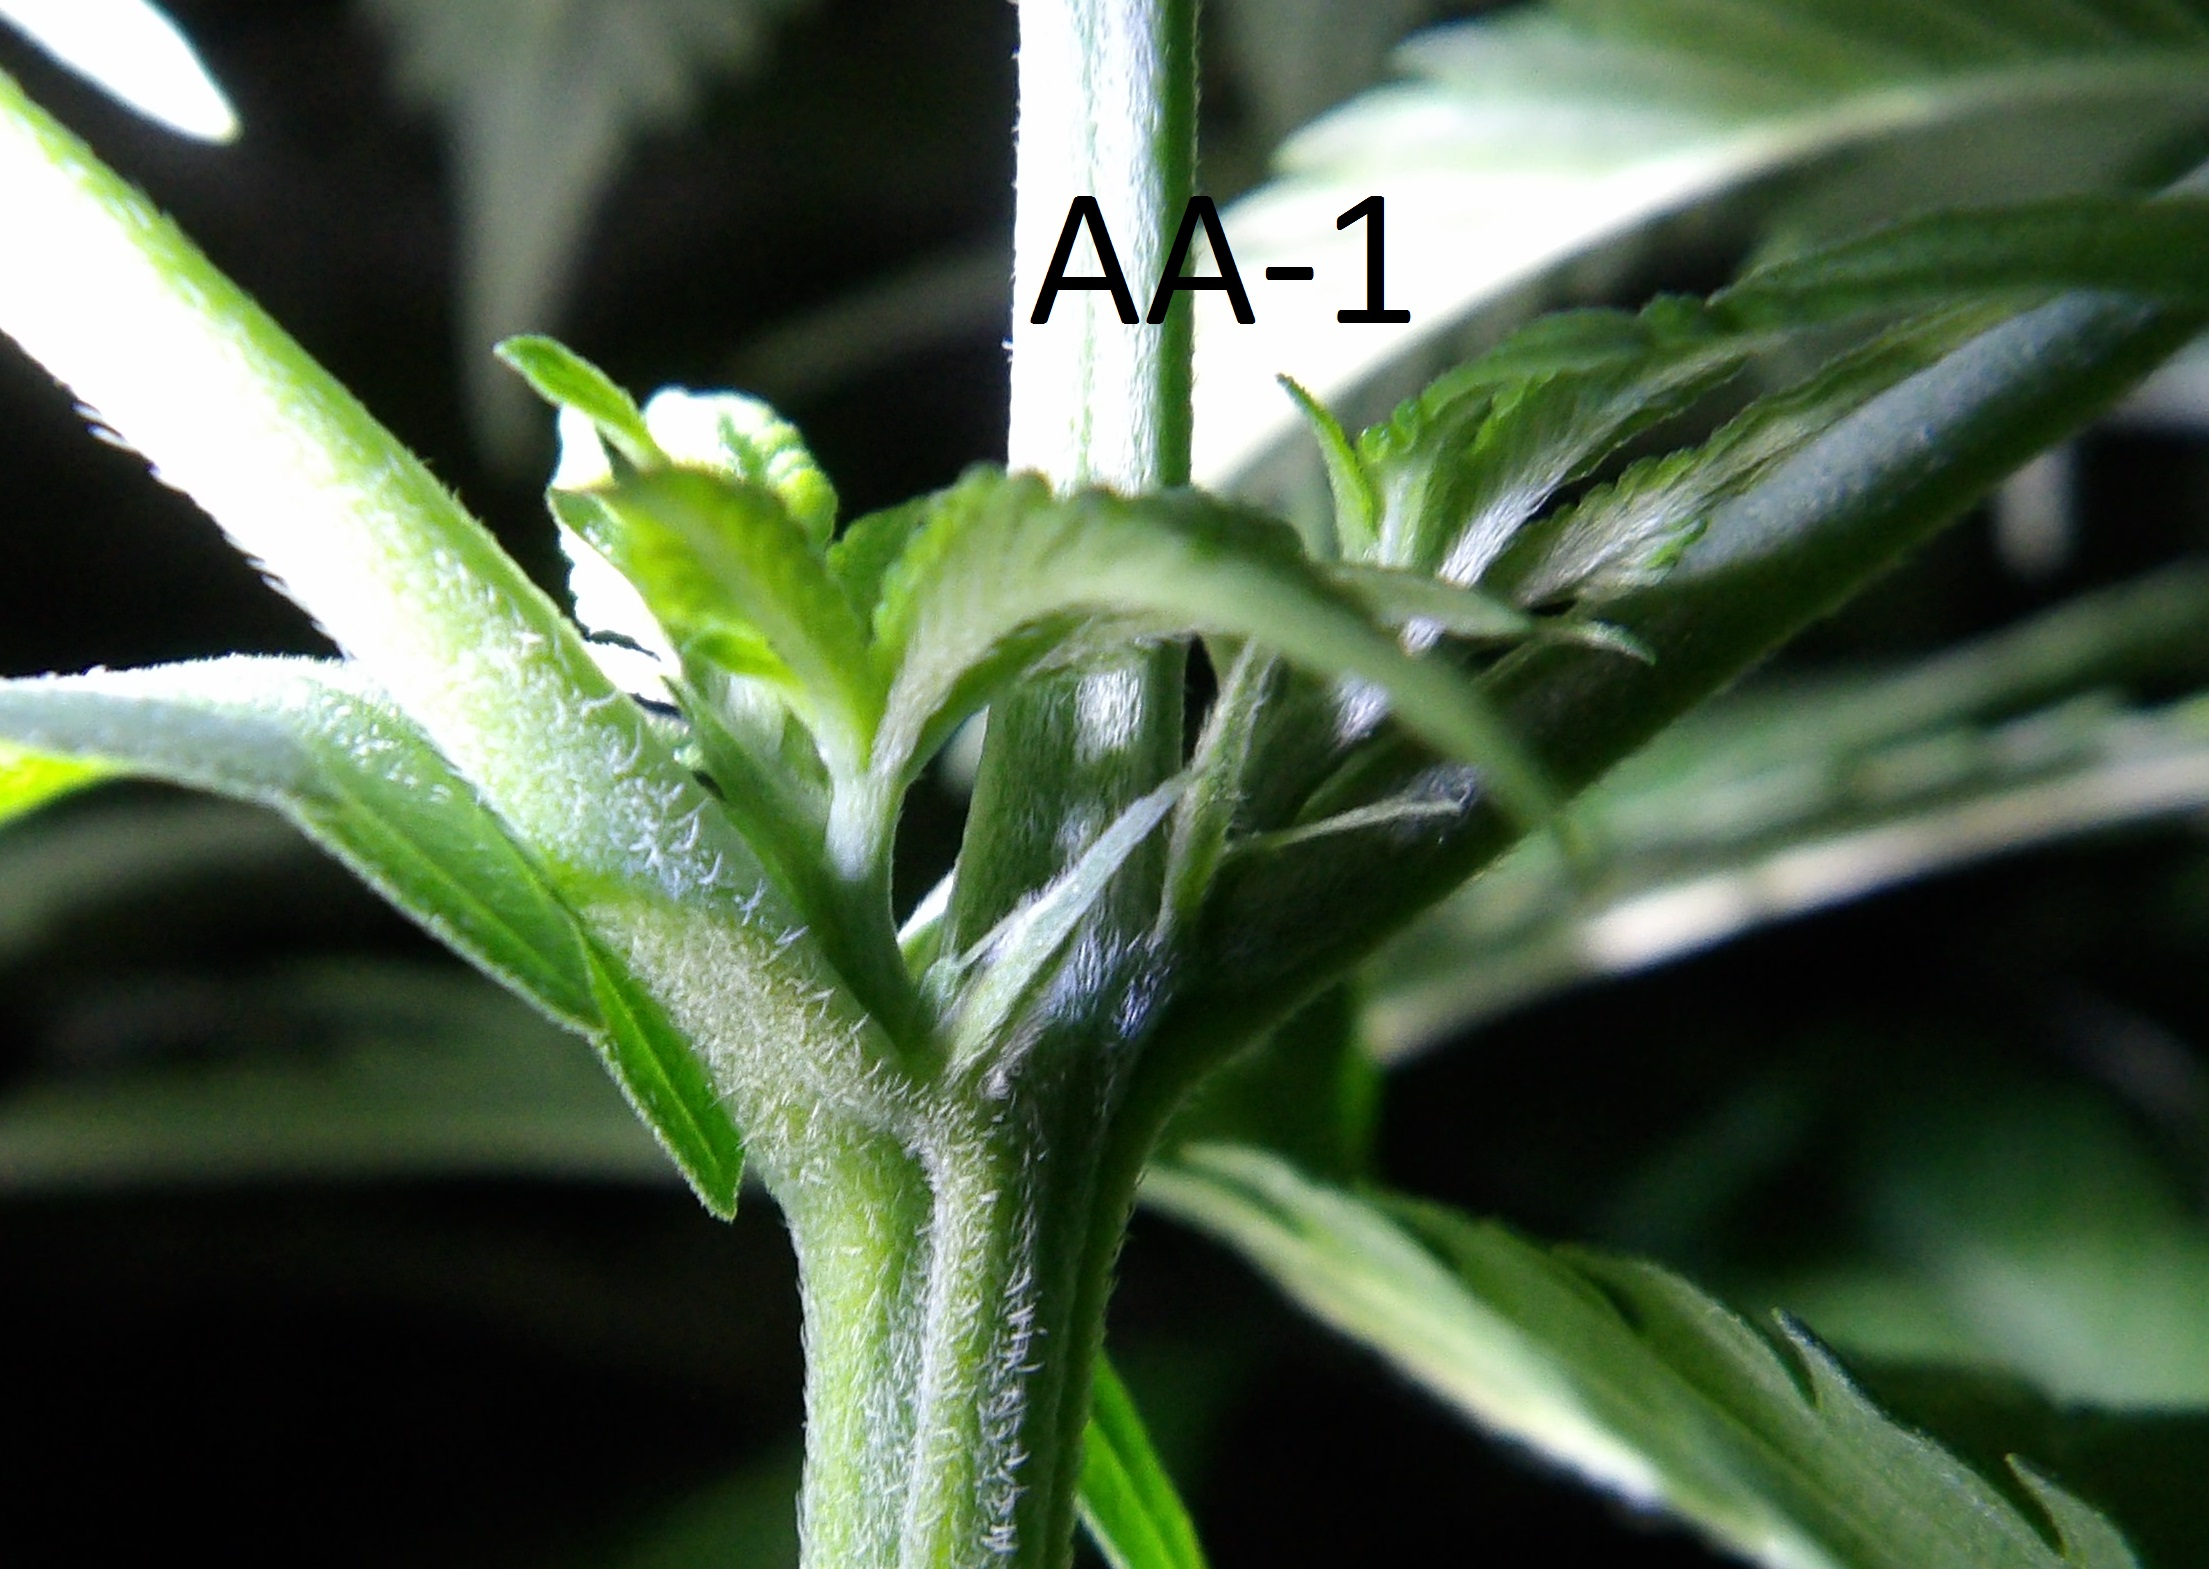 This one is mislabeled, it's actually plant A and looks like it's a girl.